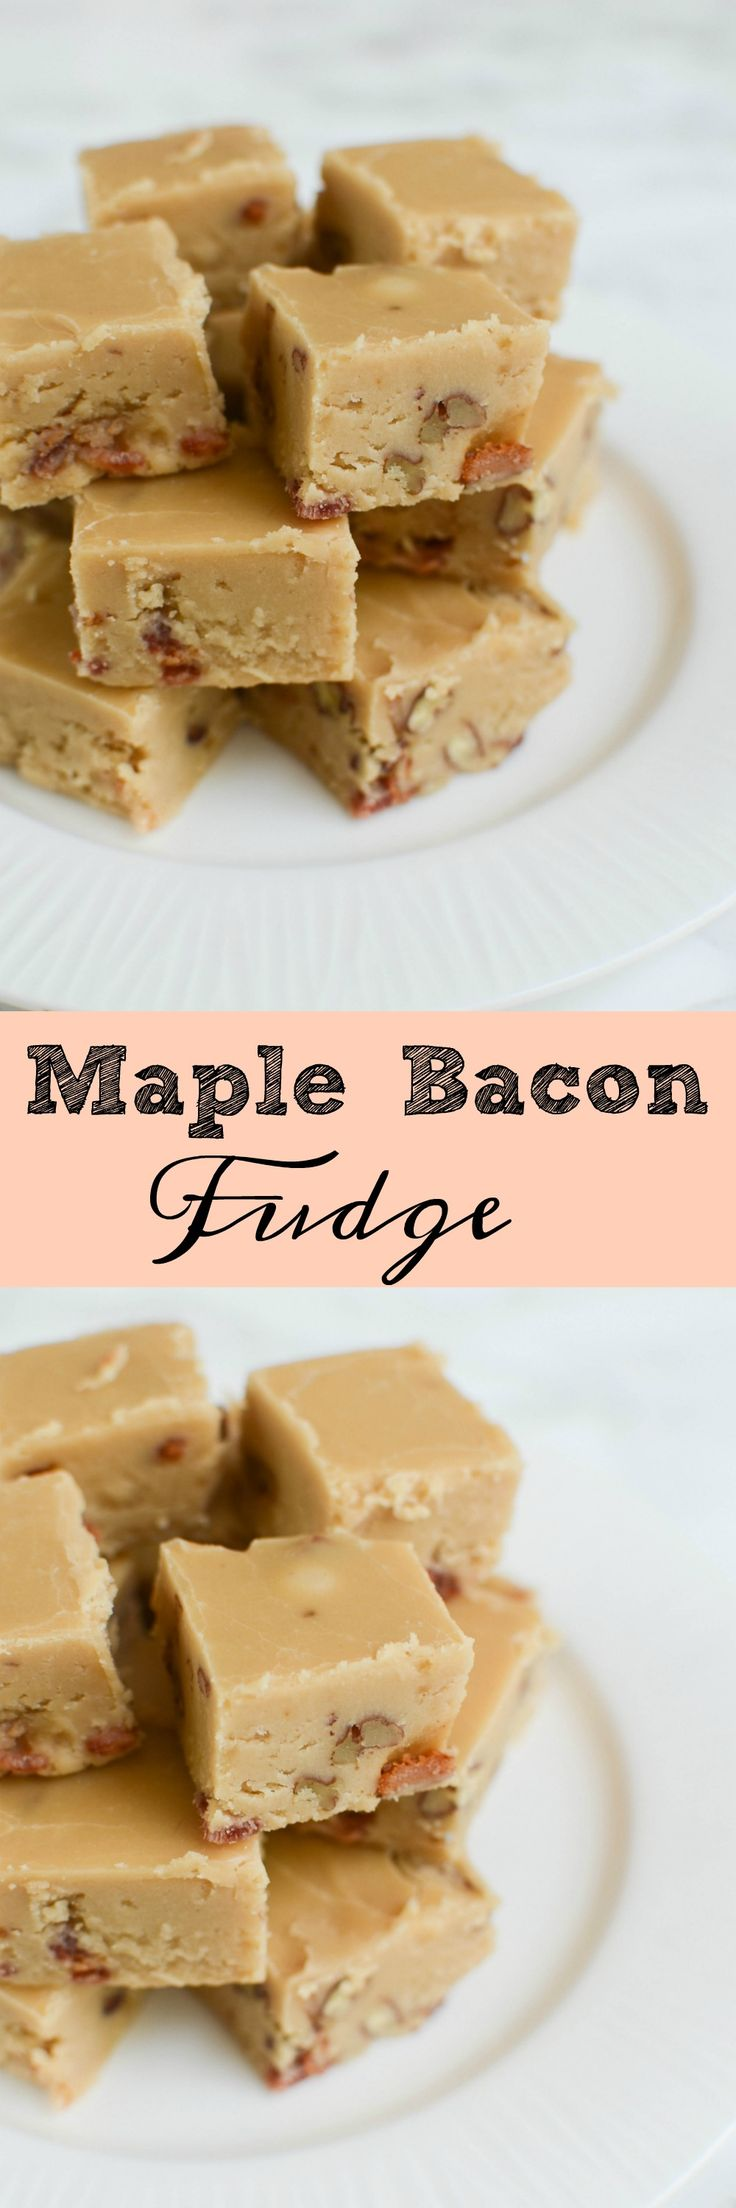 Maple Bacon Fudge - you have to make this at Christmas! The sweet and ...